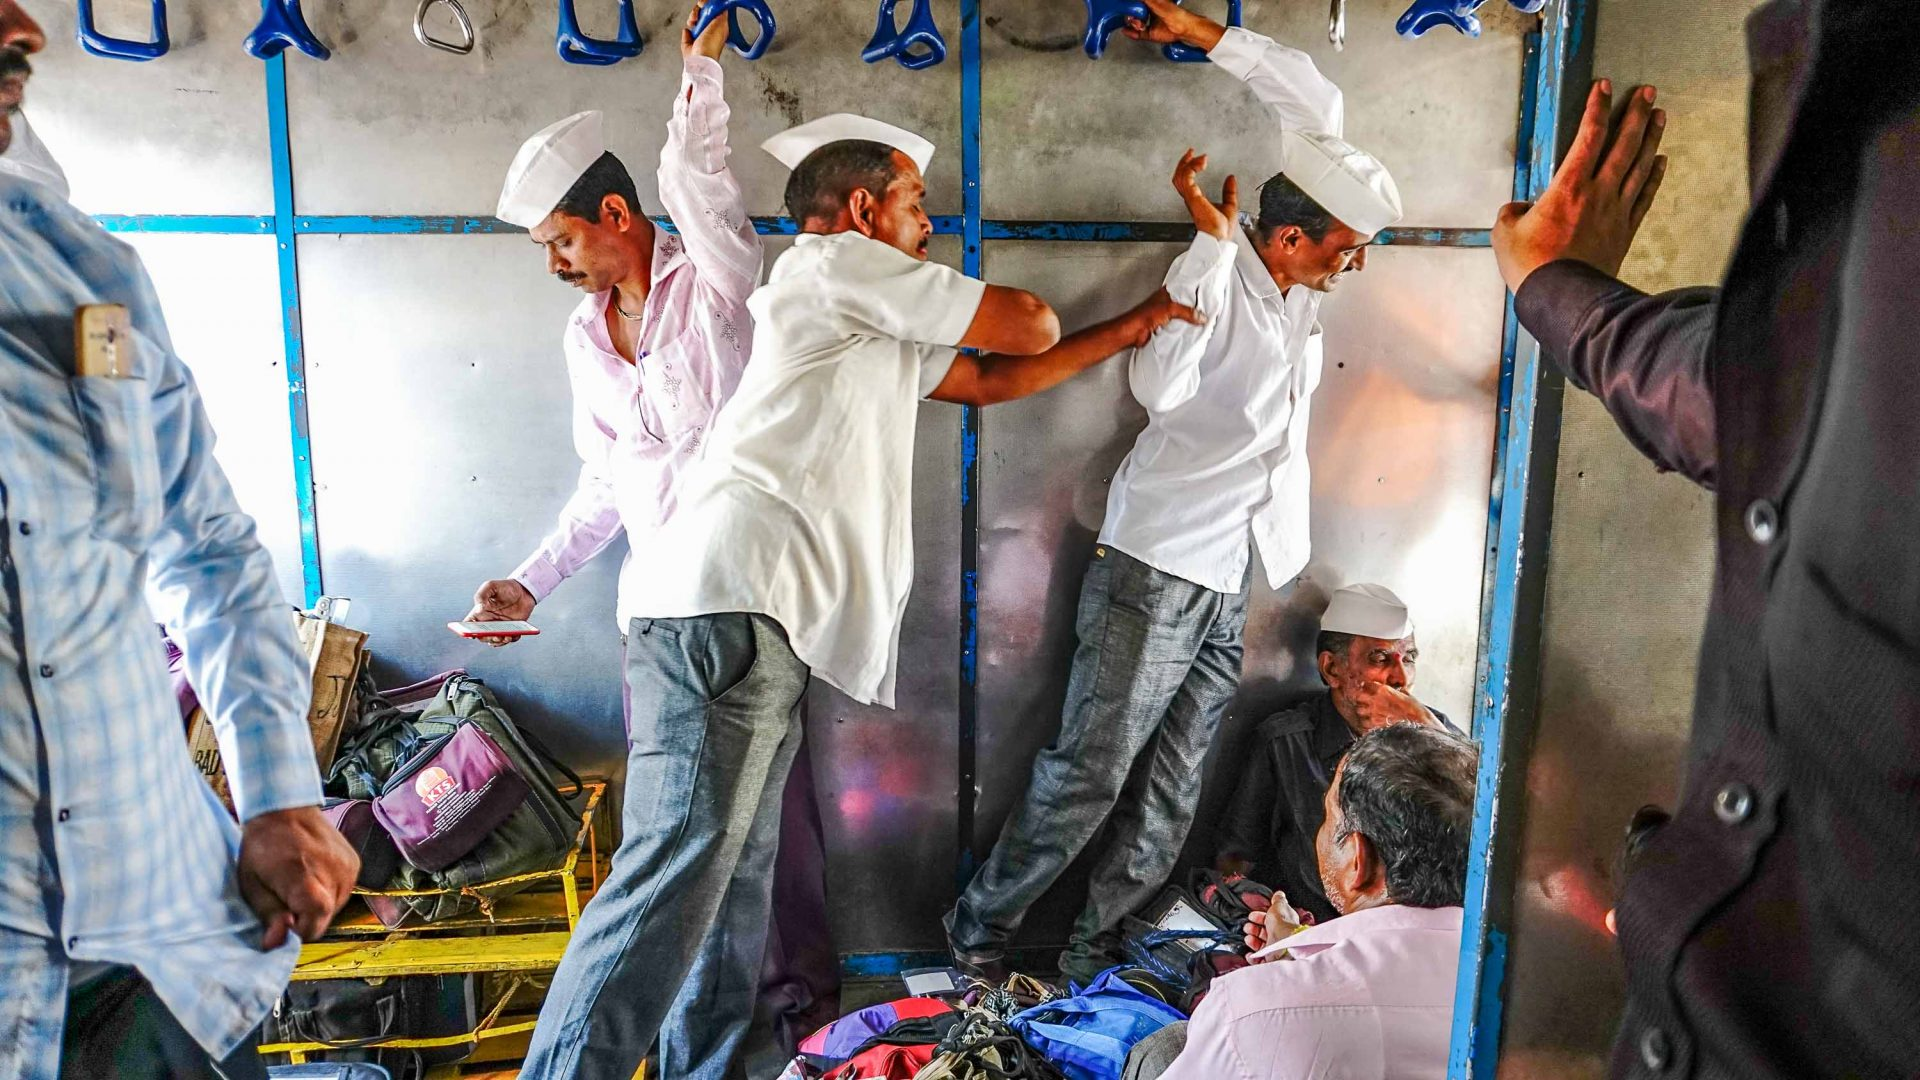 Once aboard the train, the dabbawalas relax and engage in playful banter.